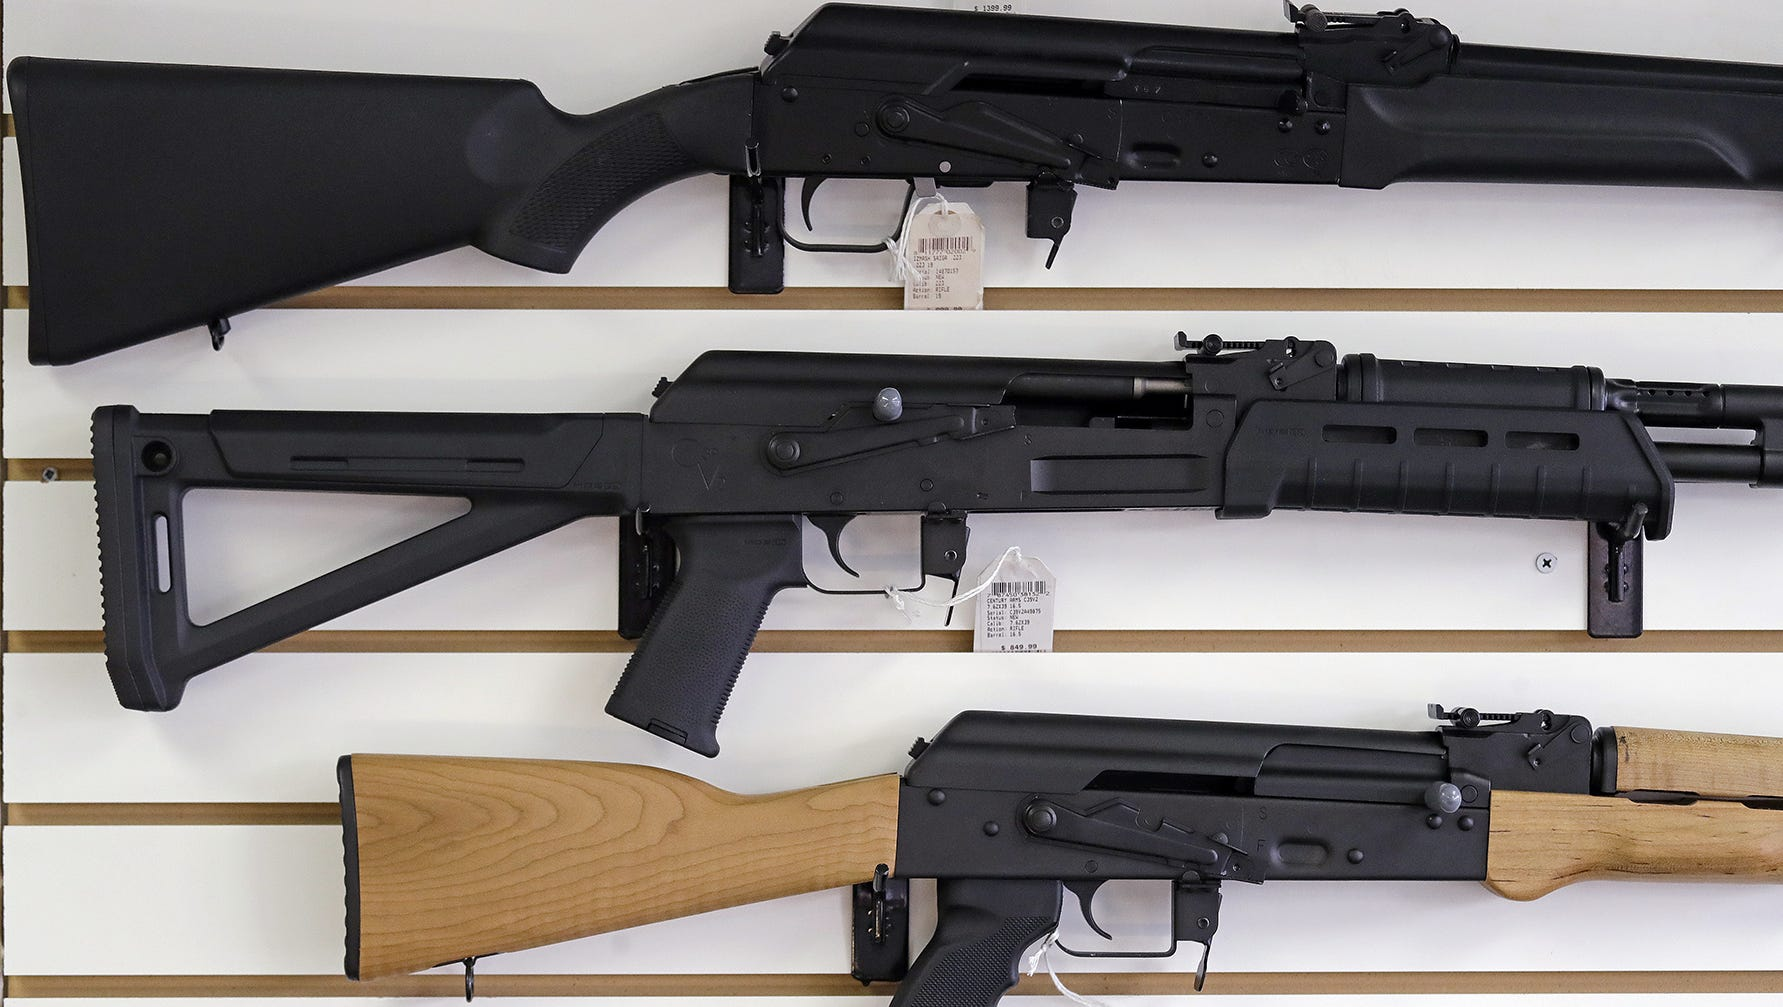 Washington gun shop owners expect sales to rise after voters approved Initiative 1639, which adds restrictions to the purchase of semi-automatic rifles.